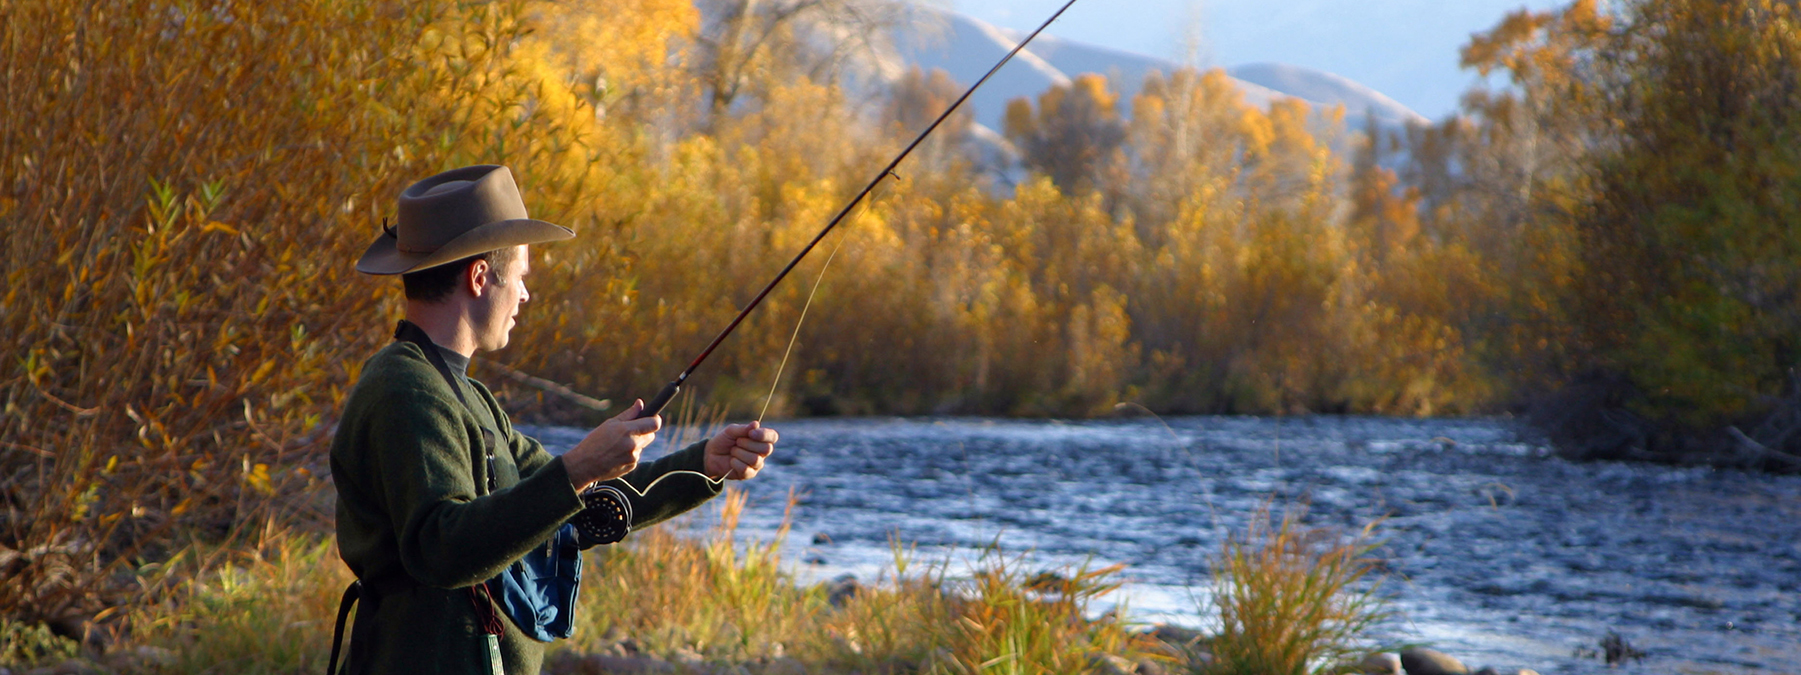 Fishing in Salt Lake City | Salt Lake City Recreation